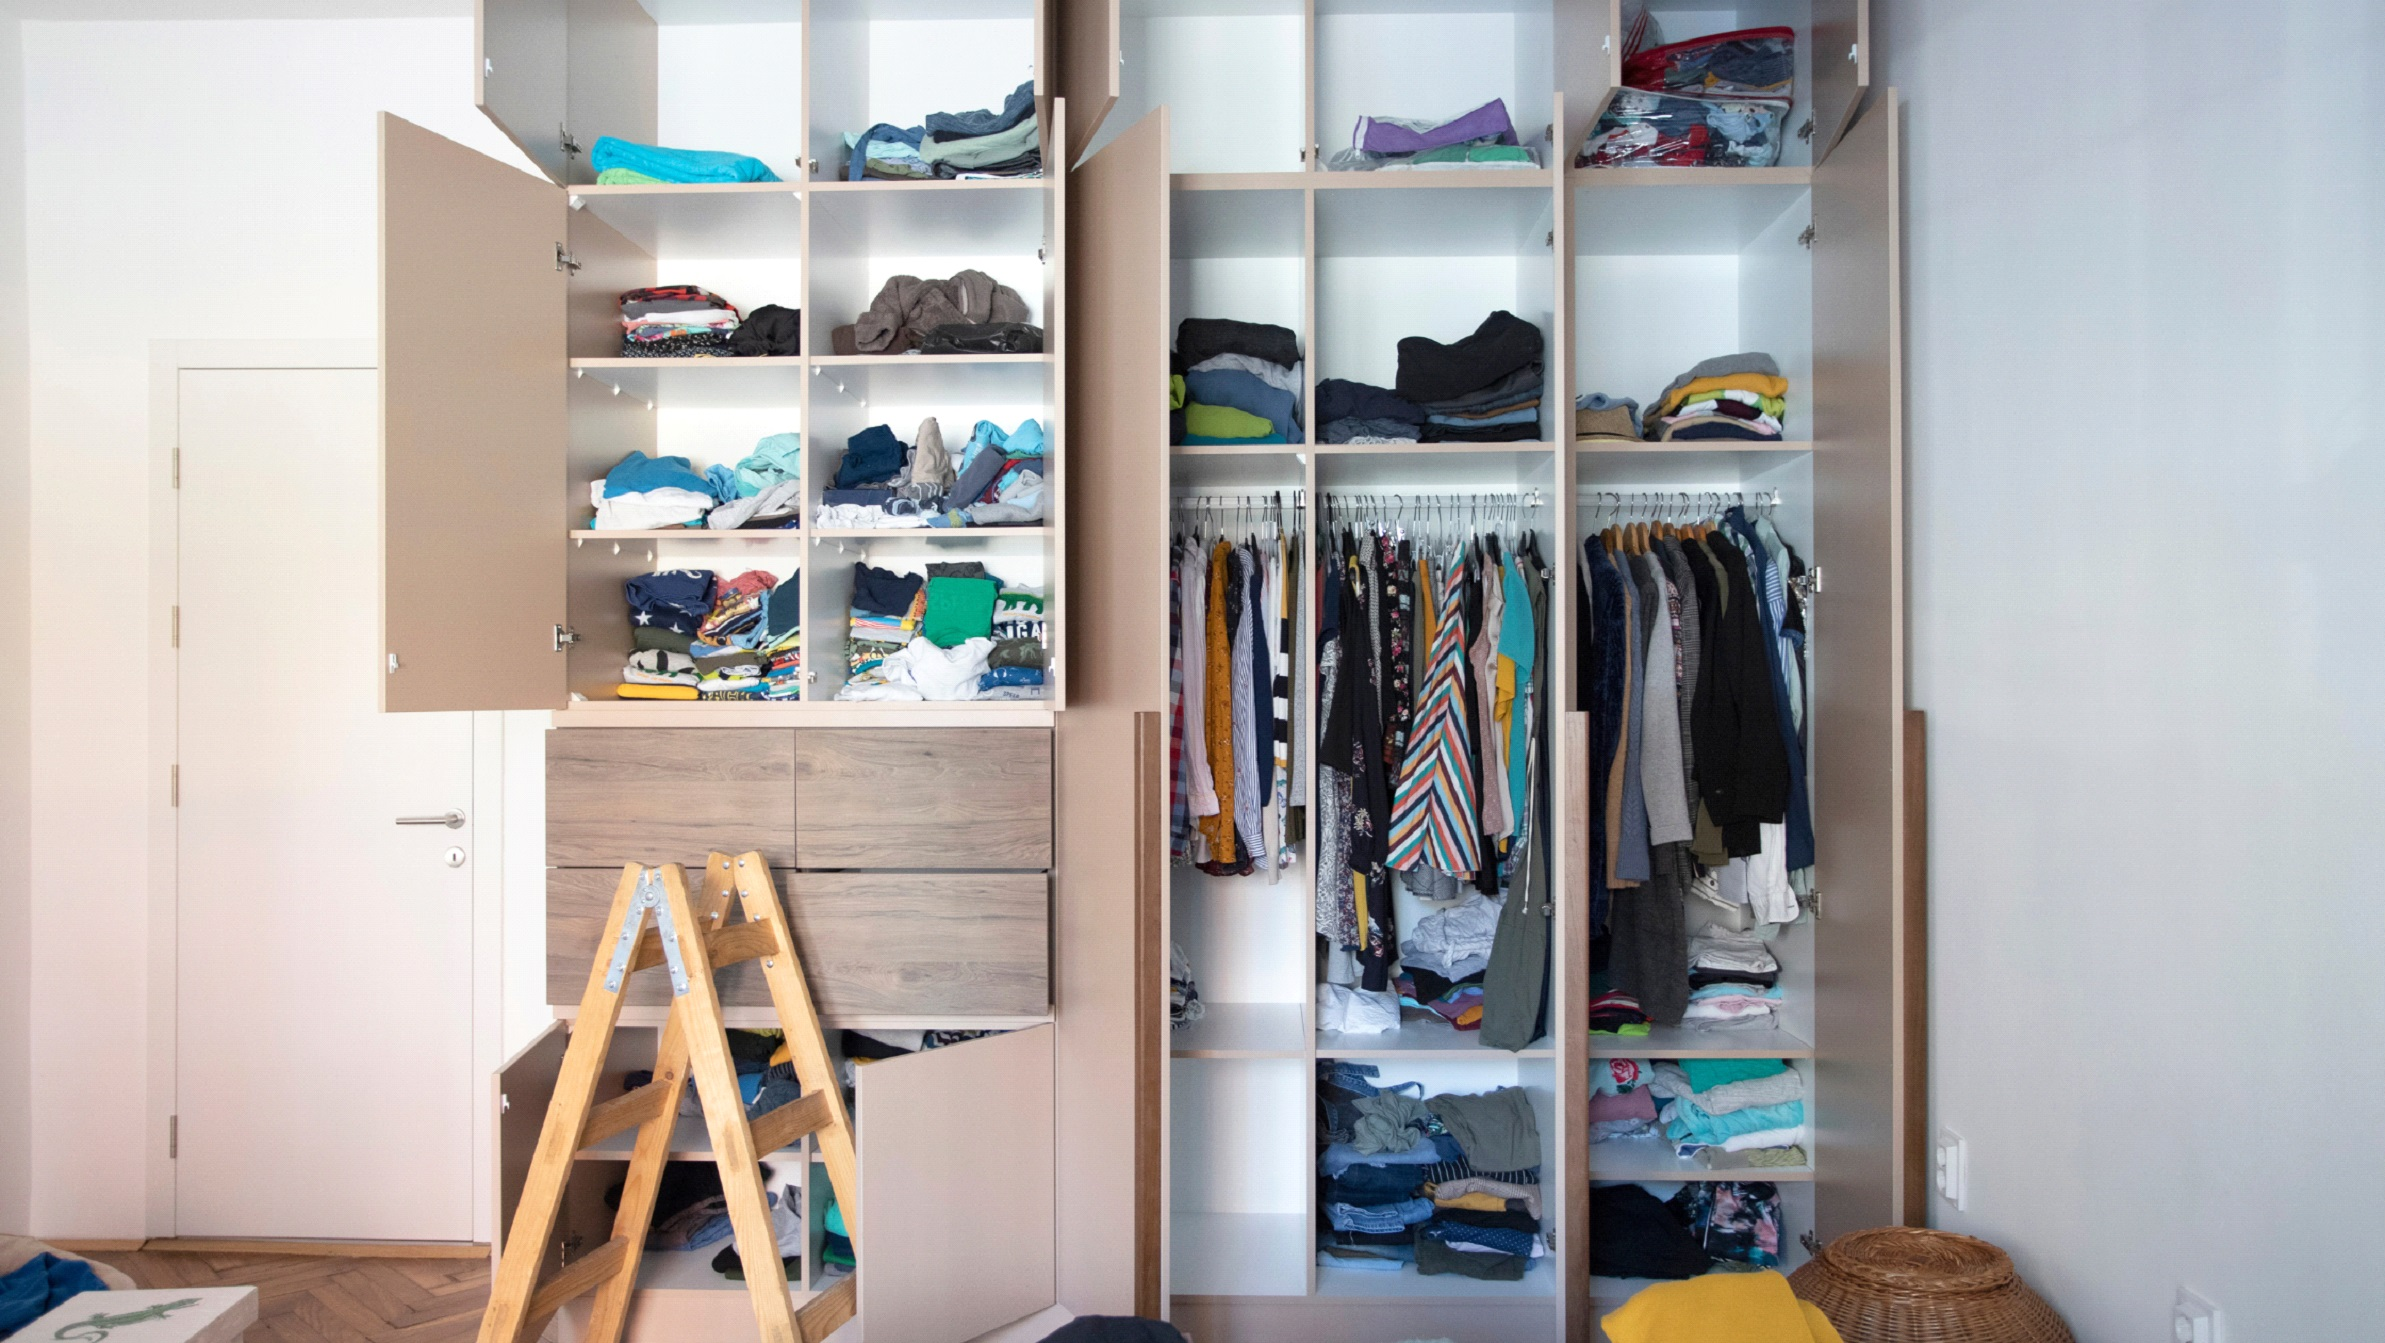 Home de-cluttering, depersonalizing, preparing to sell